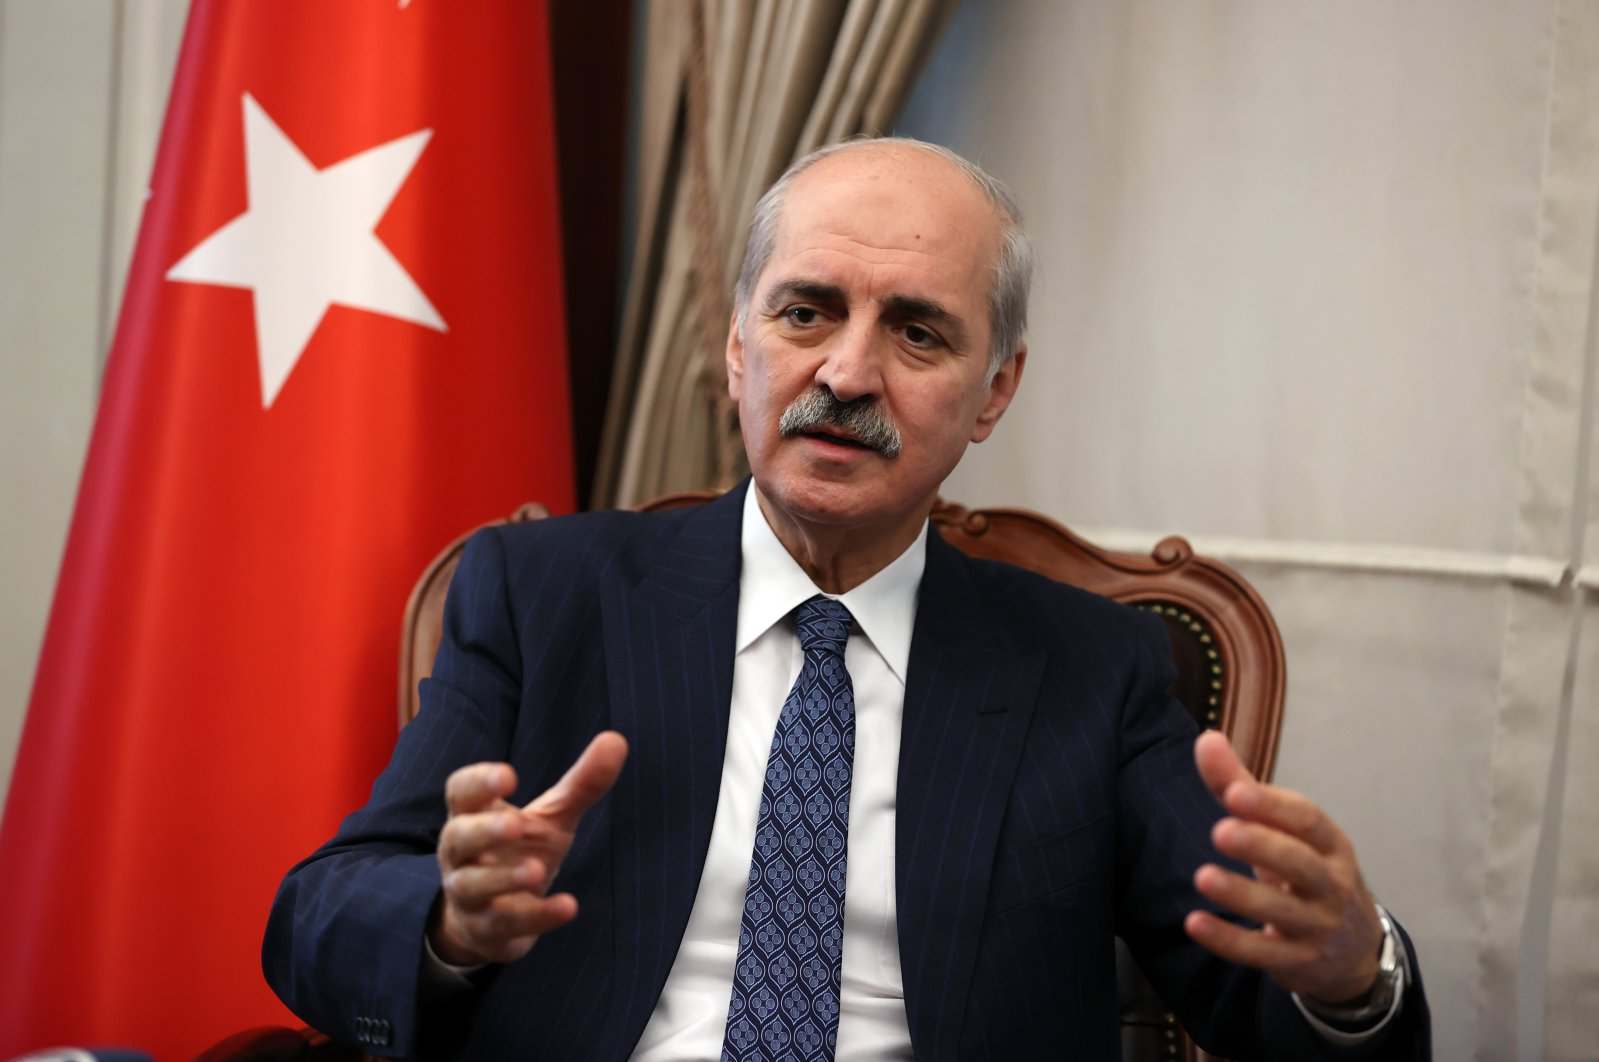 The ruling Justice and Development Party (AK Party) Deputy Chair Numan Kurtulmuş speaks to the Anadolu Agency (AA), Dec. 24, 2020. (AA Photo)